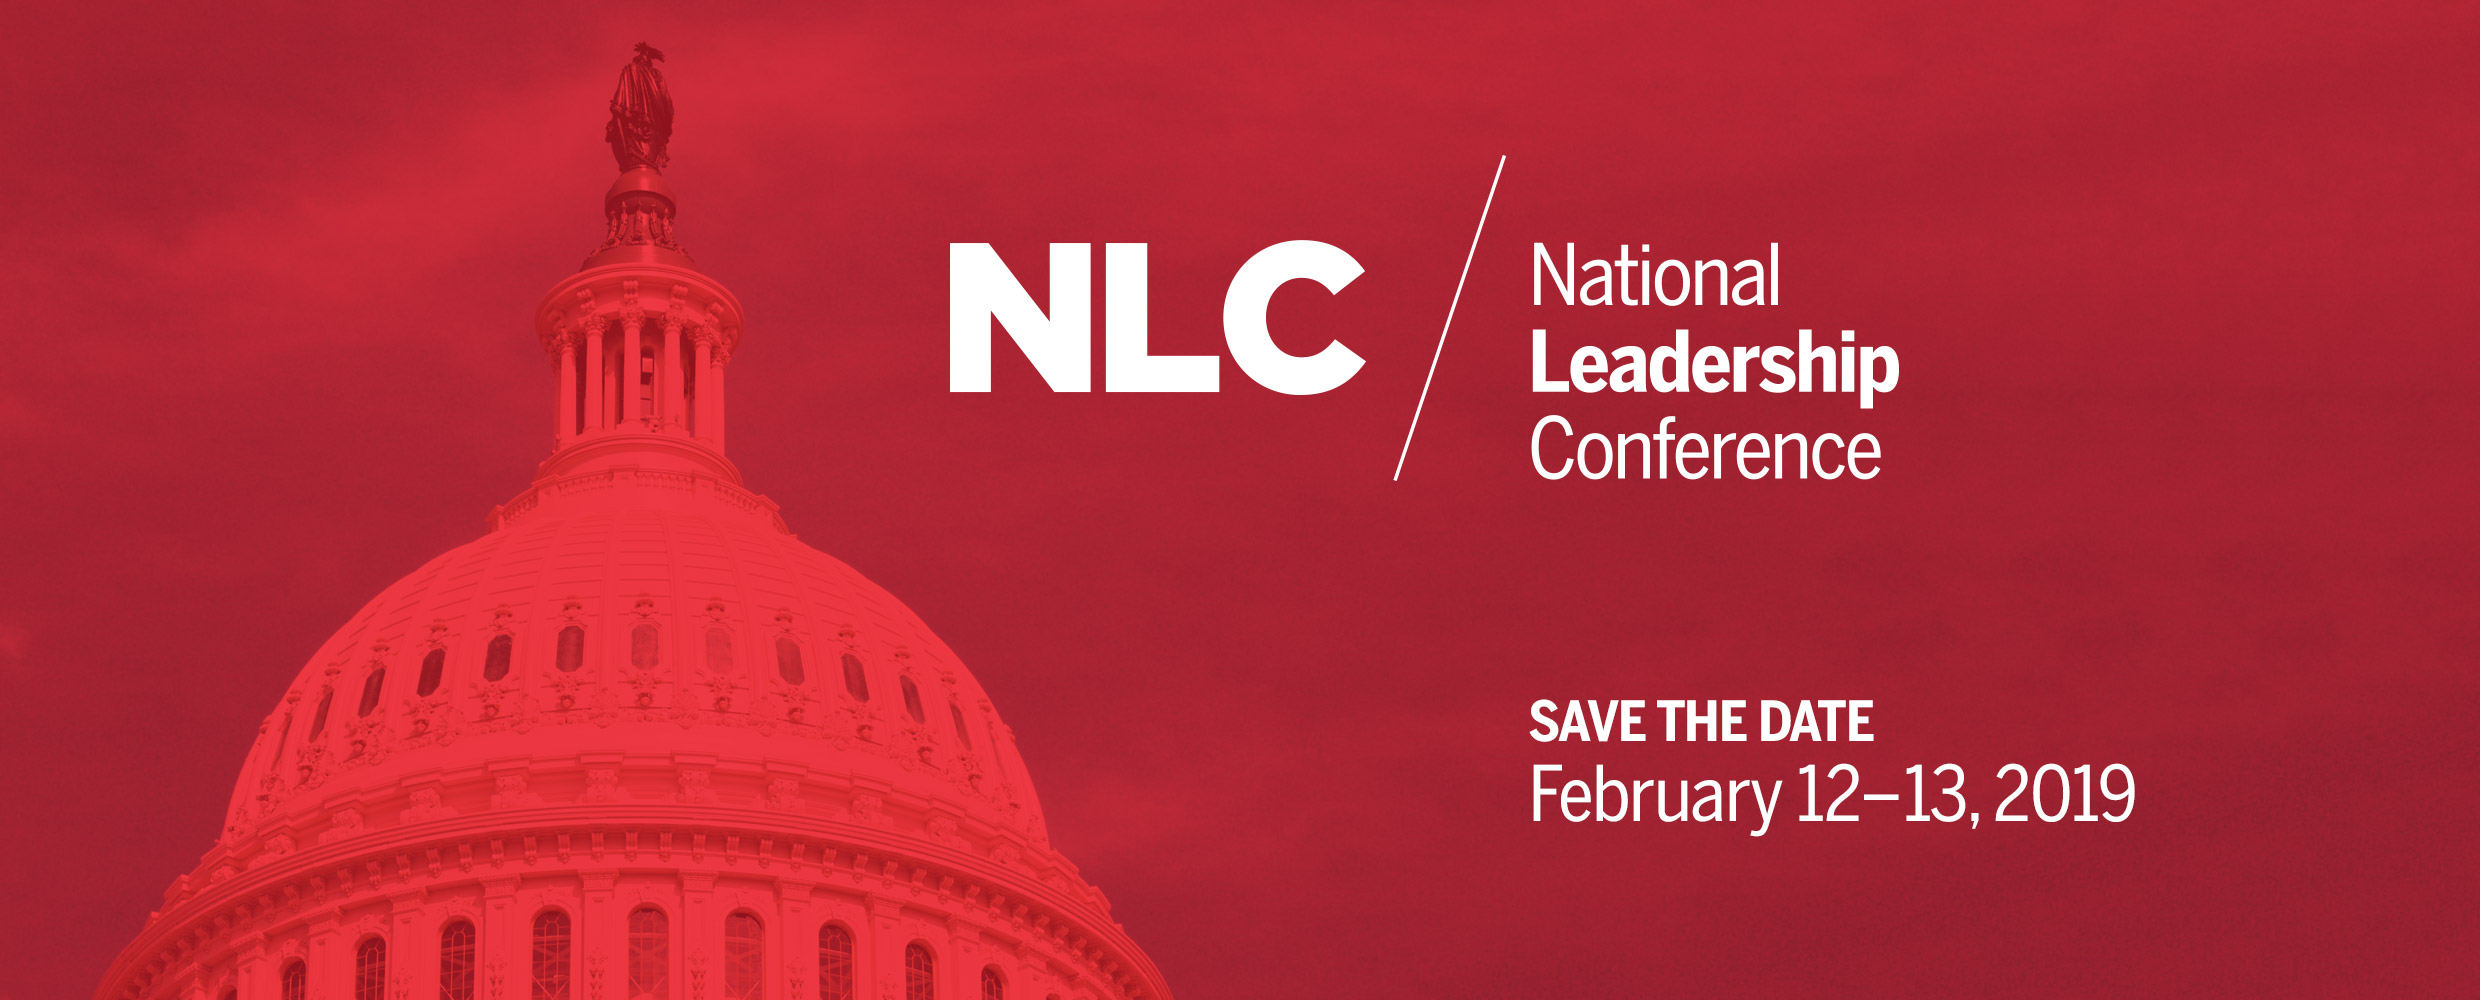 National Leadership Conference Save the Date